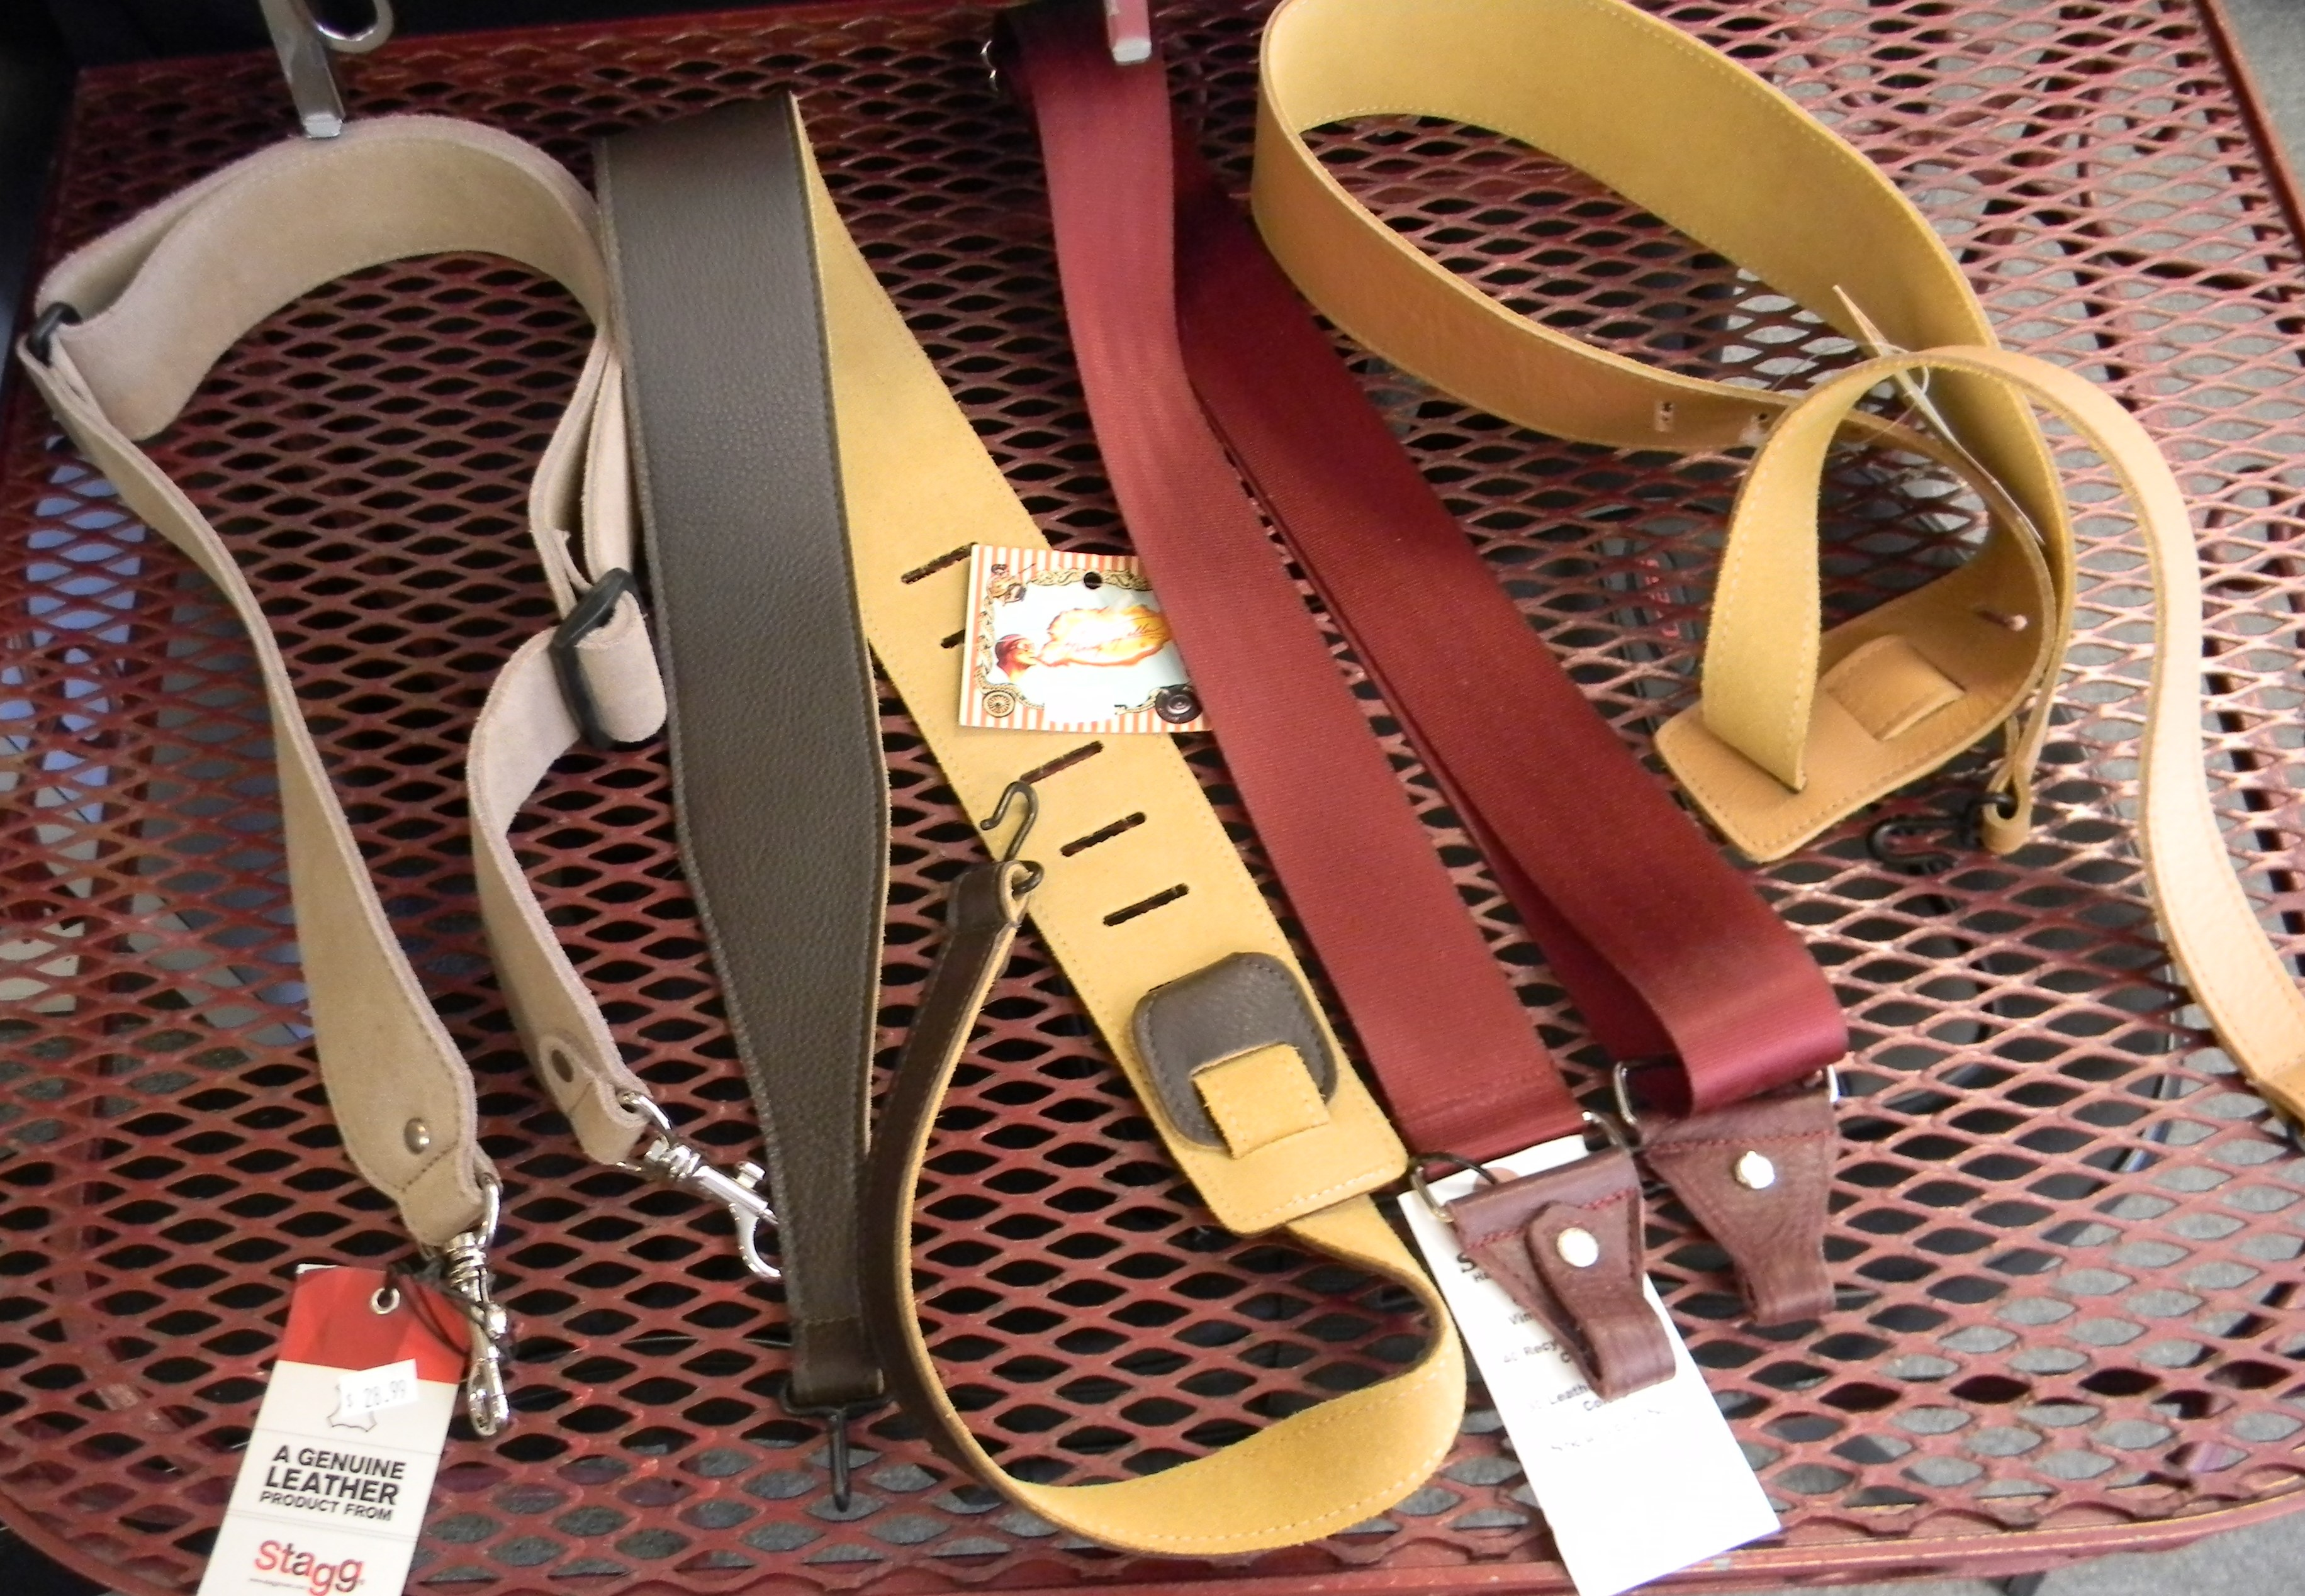 Fathers Day is soon. A cool strap makes an excellent gift. We have all kinds of straps.